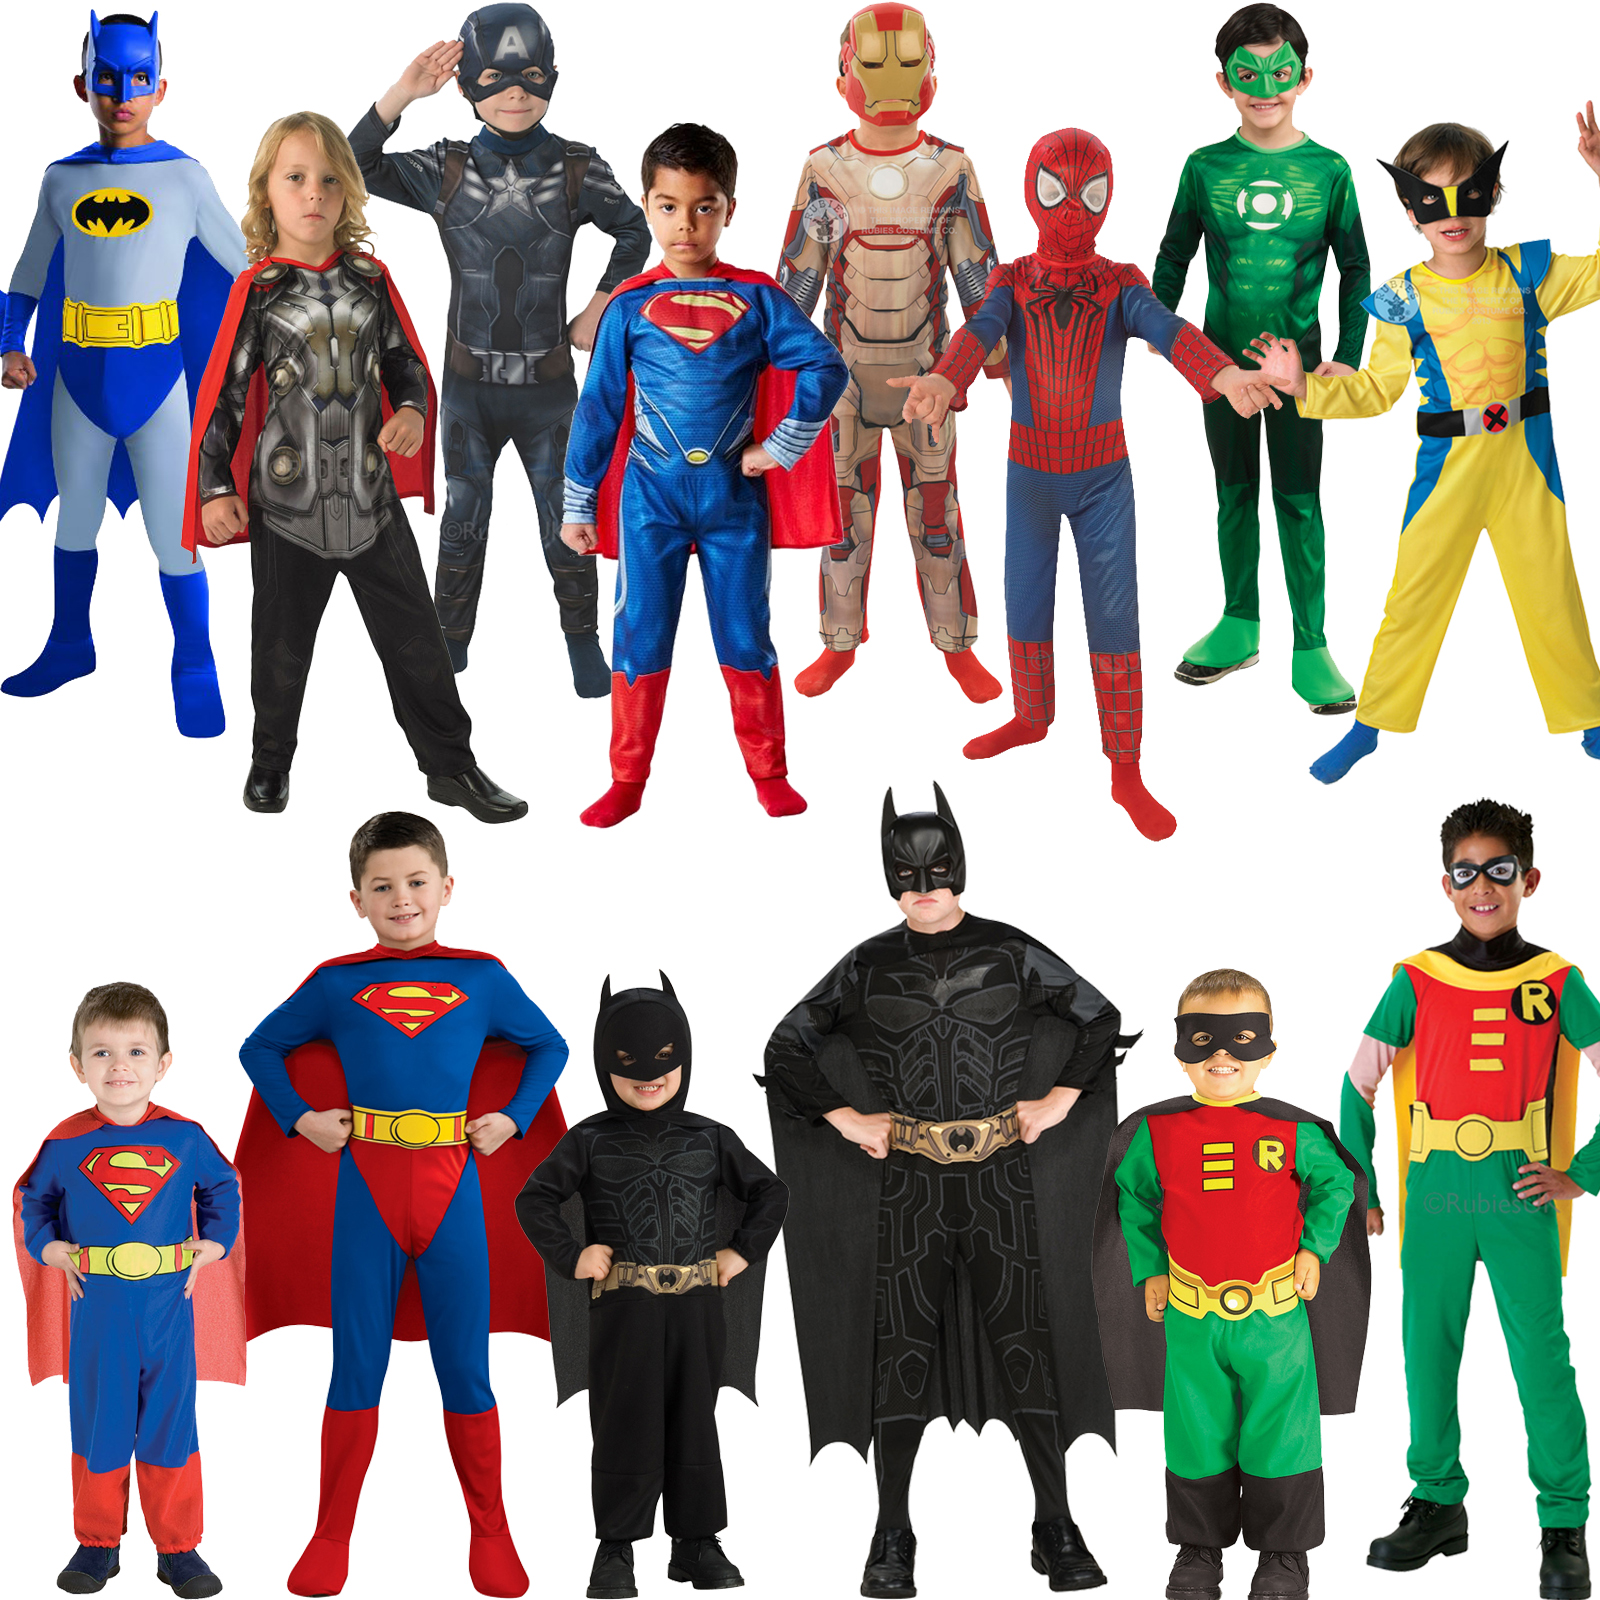 Licensed Childs Classic Superhero Fancy Dress New Costume